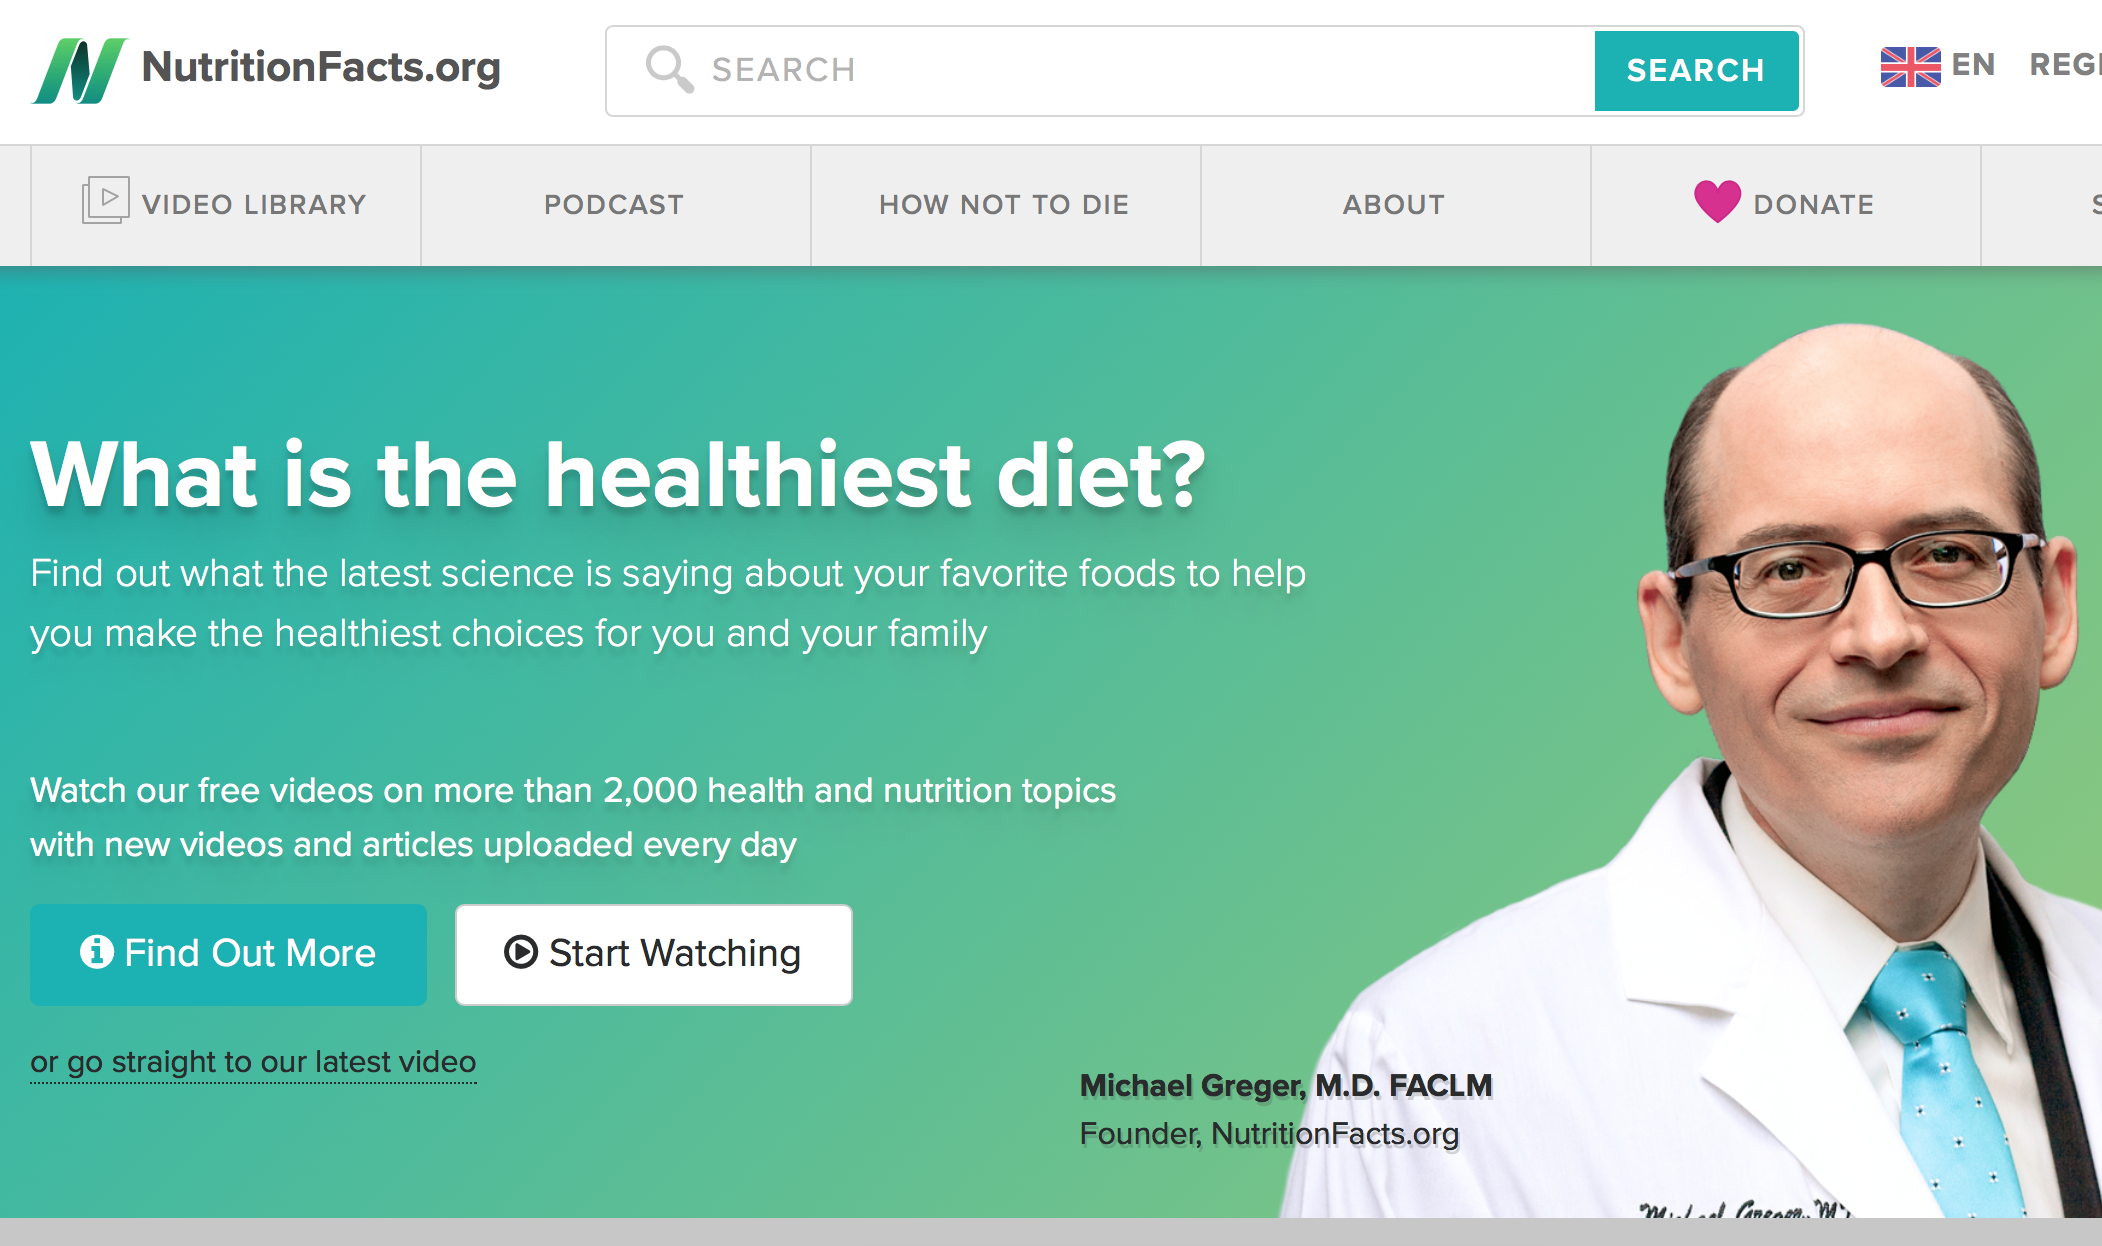 NutritionFacts.org - Michael Greger, MD, FACLM